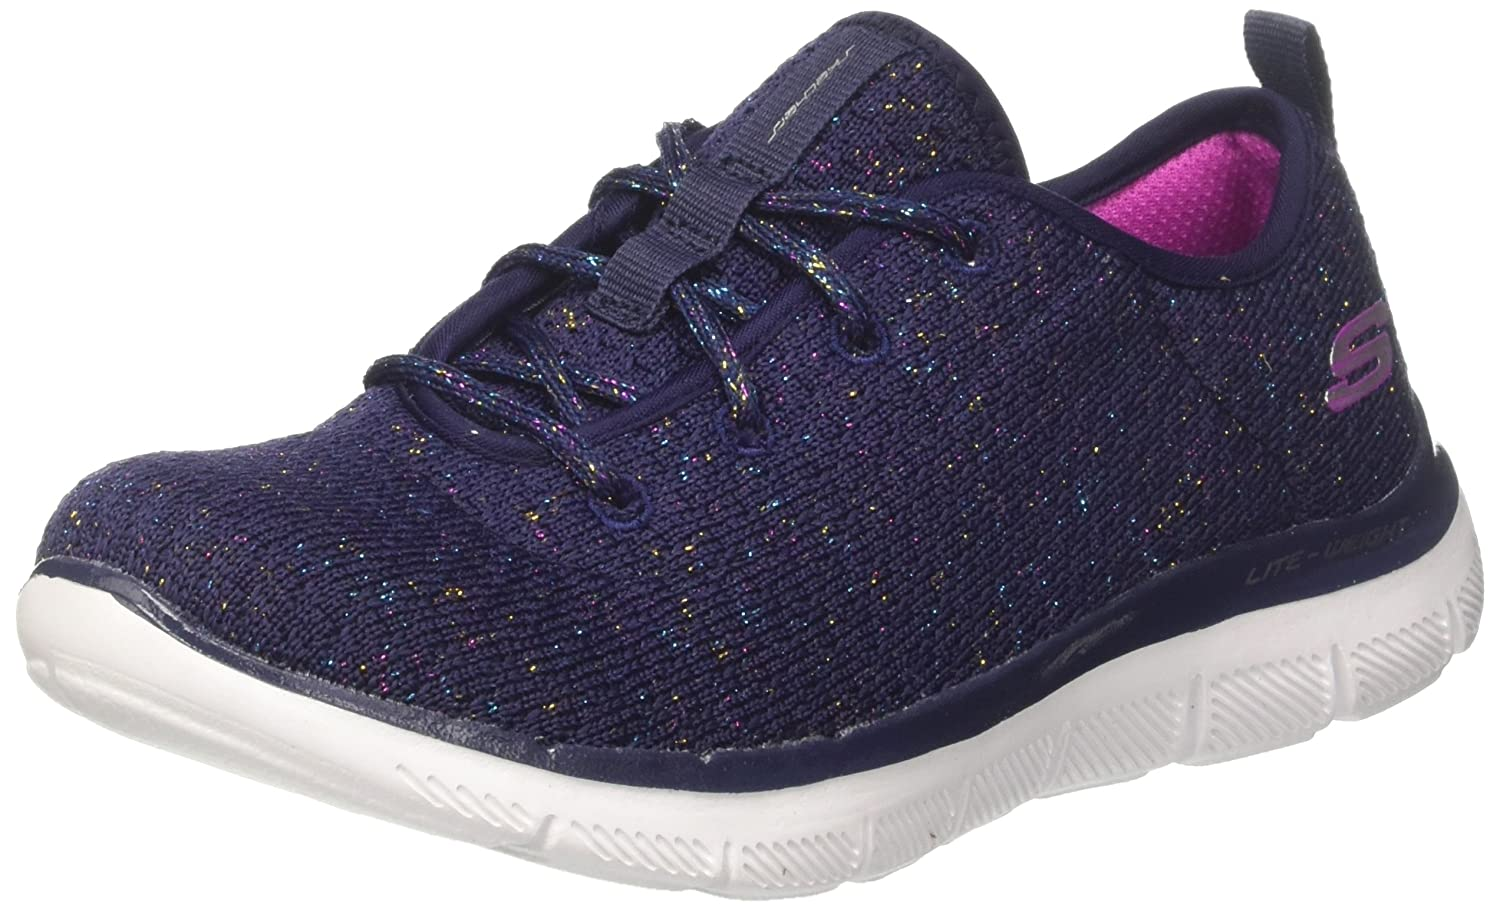 Skechers Skech Appeal 2.0-Bold Move, Zapatillas para Niñas 27 EU|Azul (Navy/Multicolour)